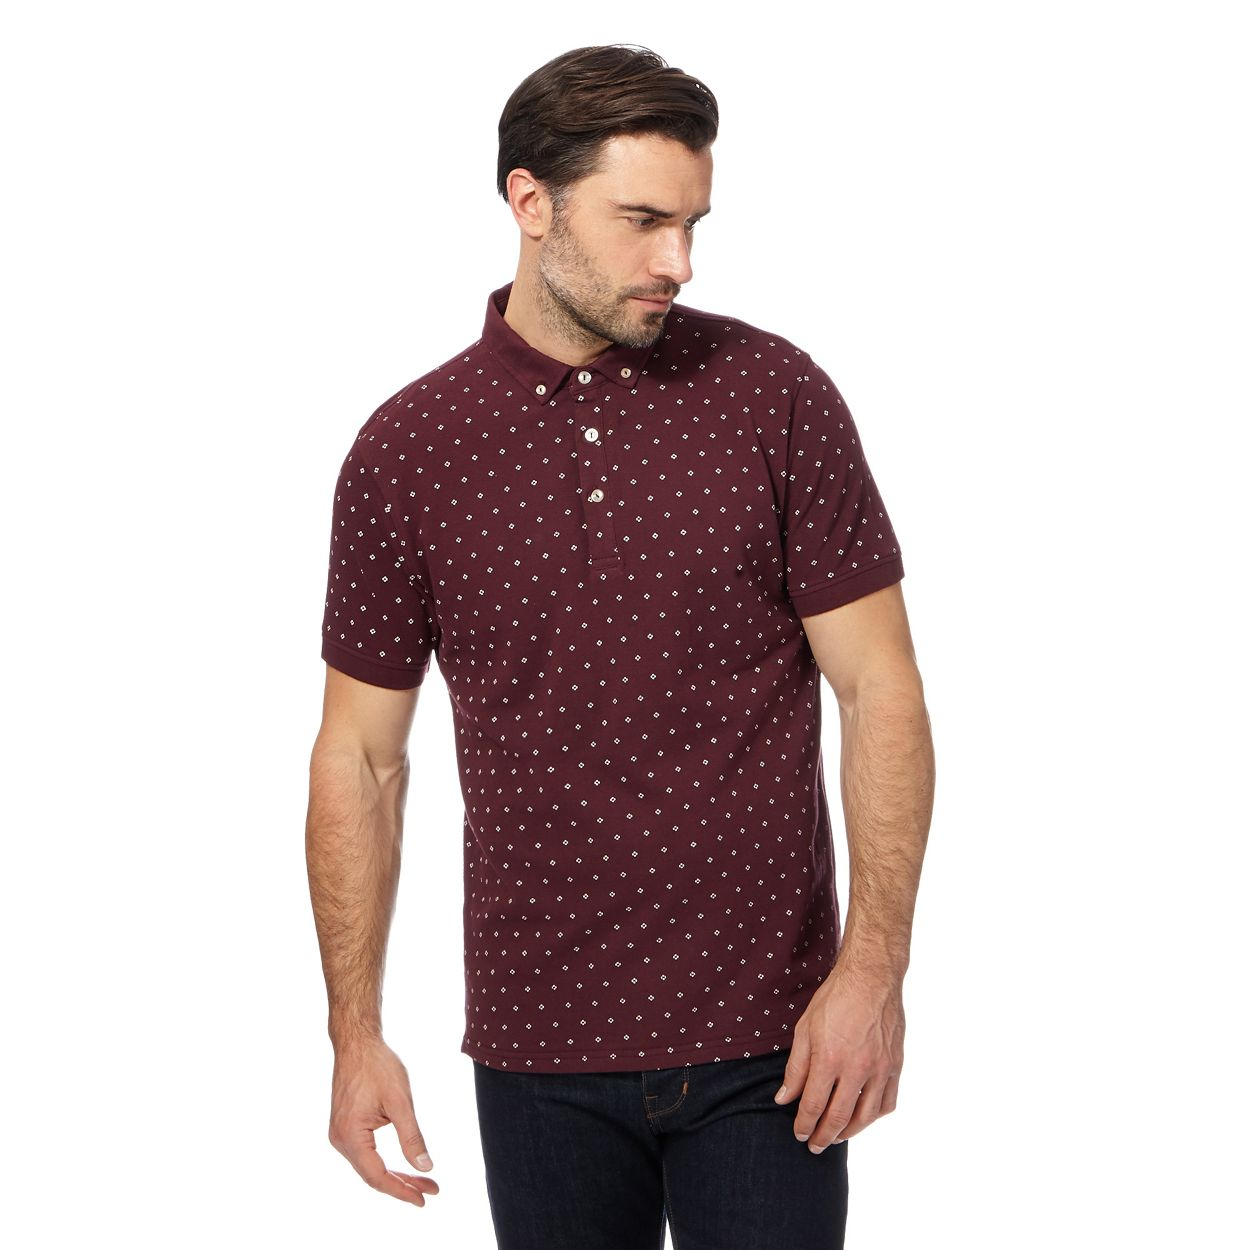 Hammond & Co. by Patrick Grant Wine Dark red floral embroidered polo shirt